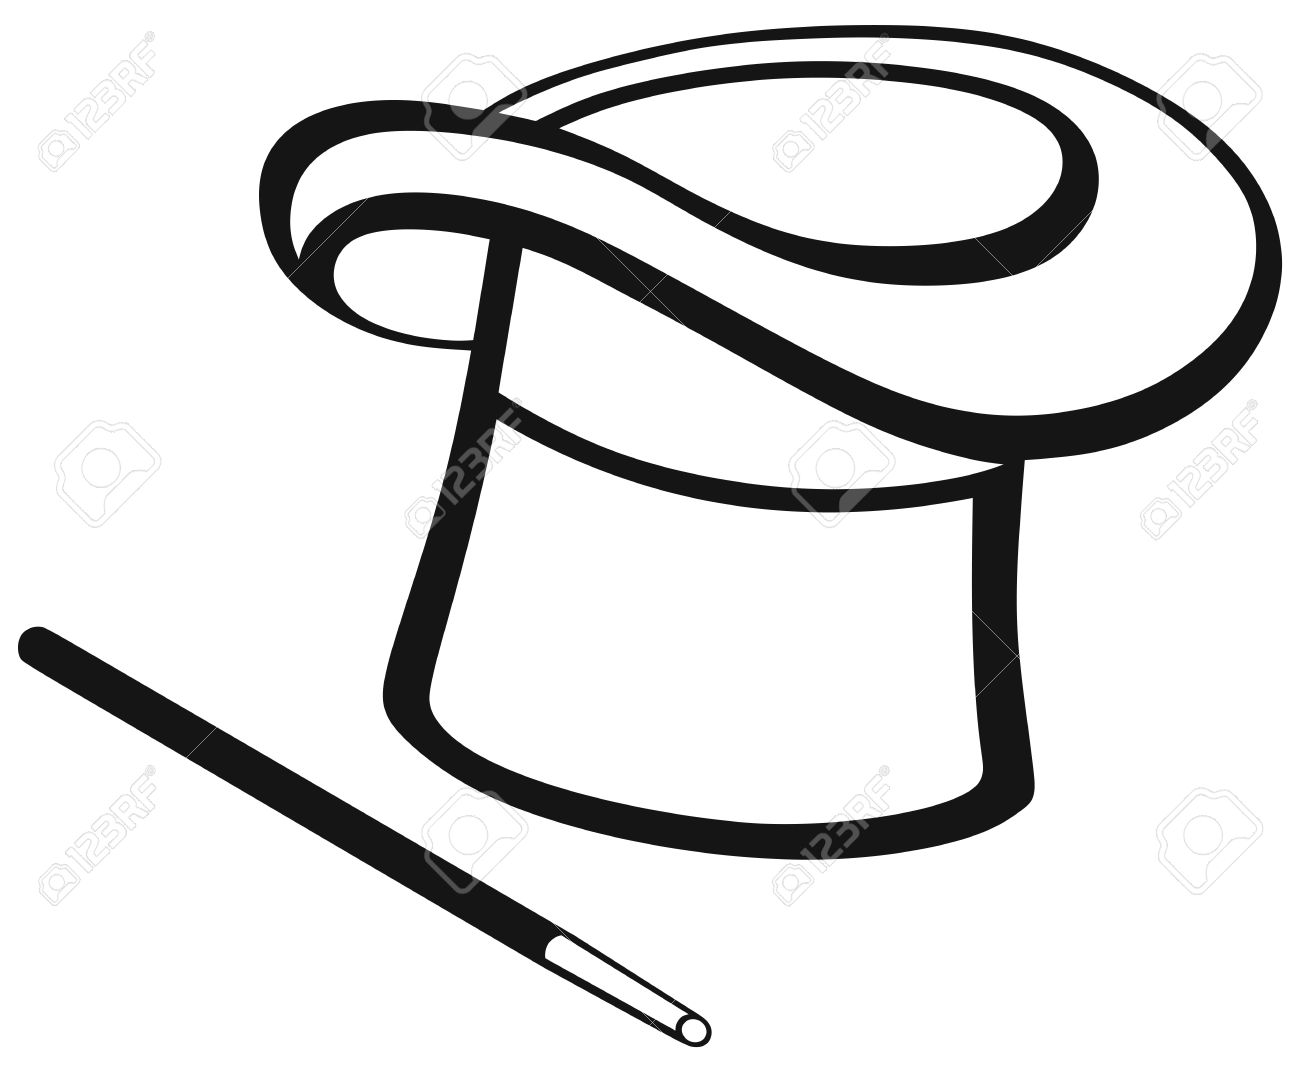 Sombrero Clip Art Black And White and hat isolated on white